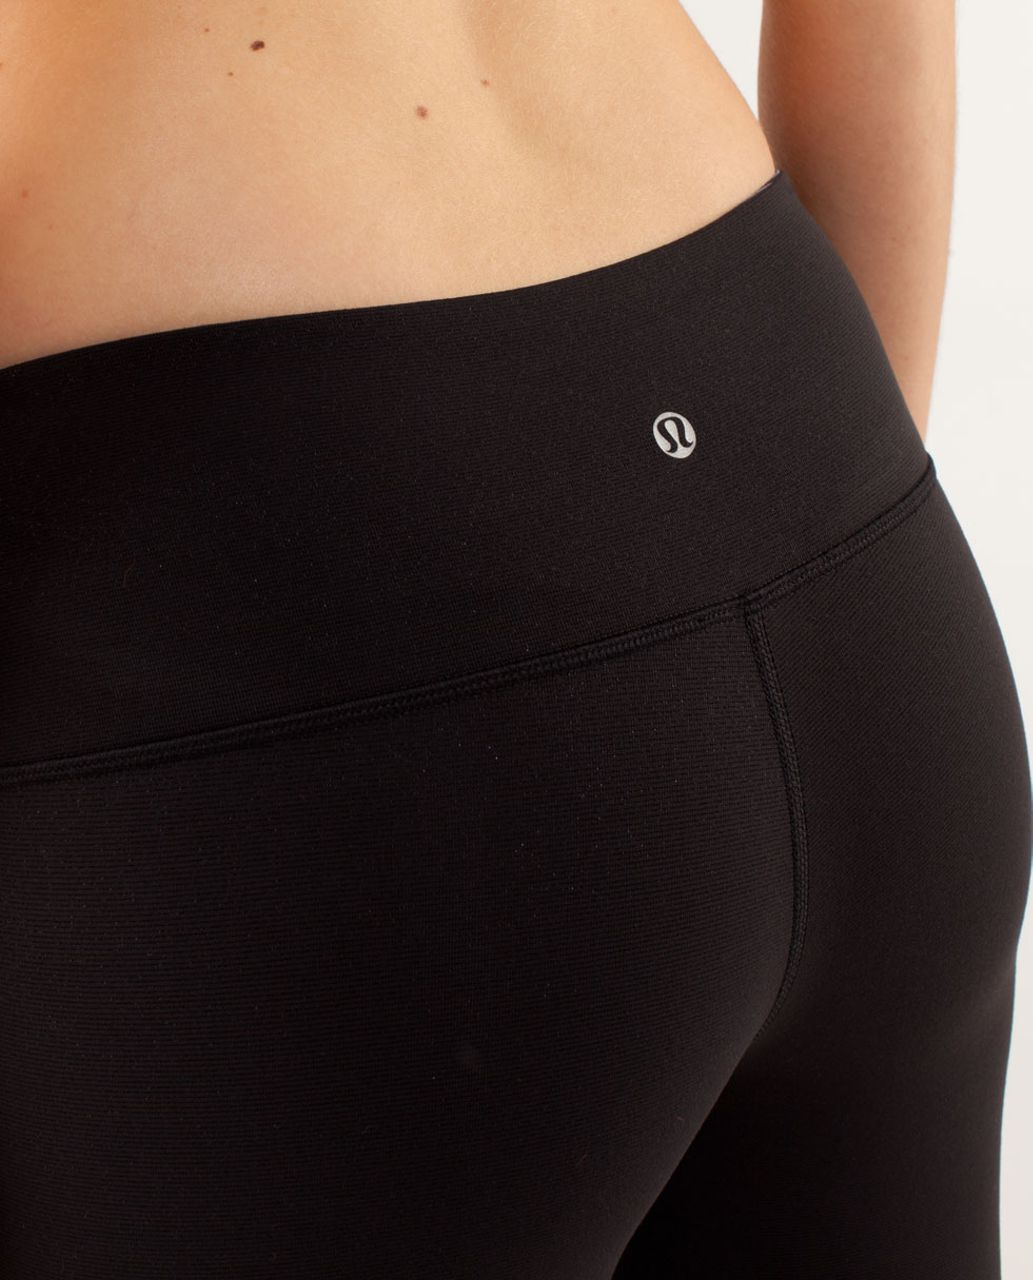 Lululemon Wunder Under Crop - Black / Wee Are From Space Black Coal